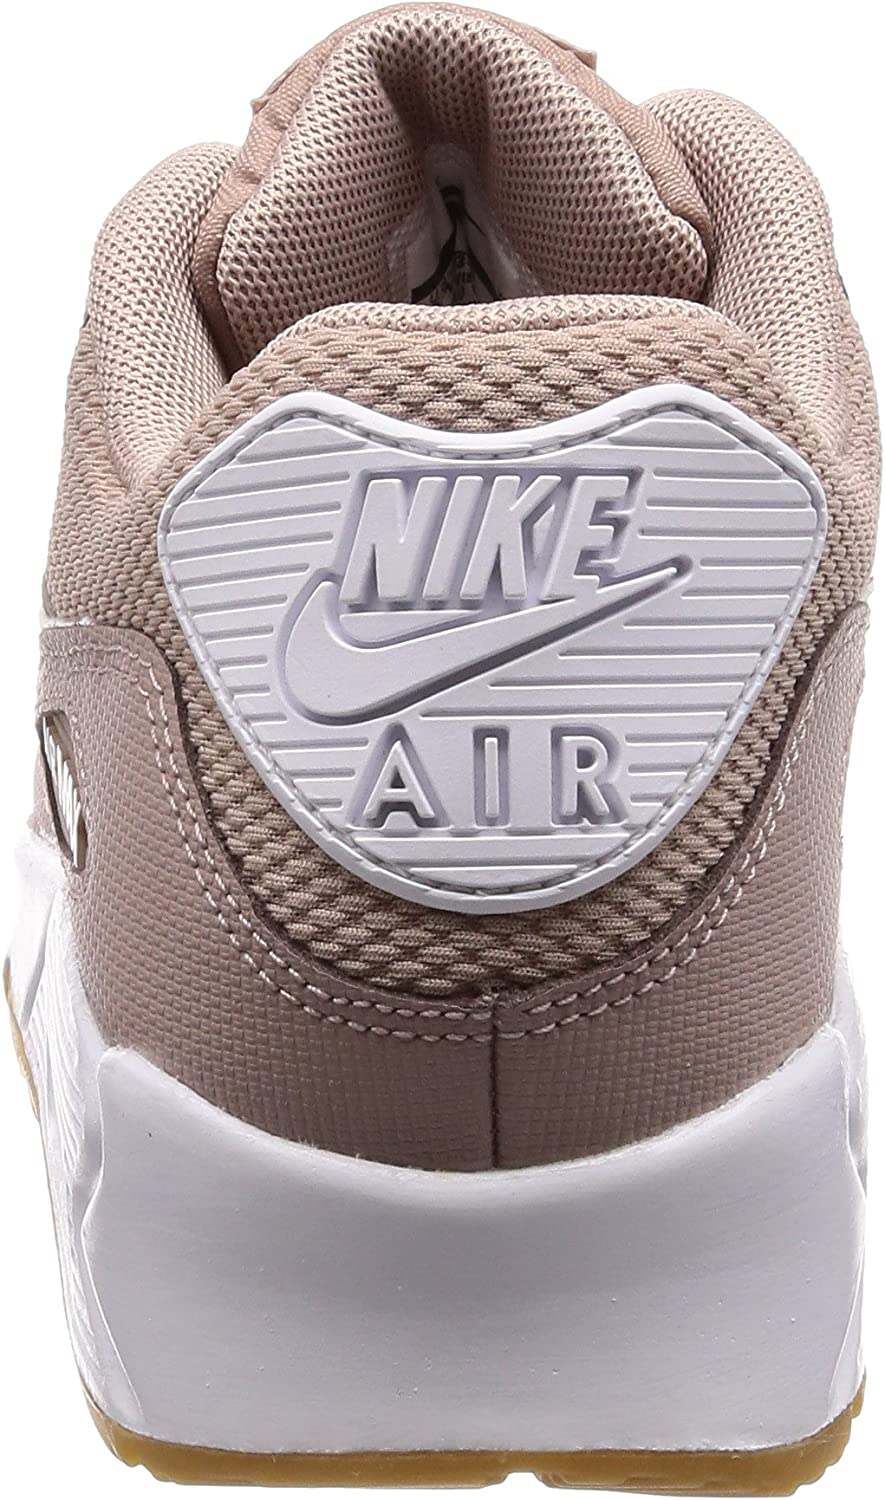 Nike Air Max 90, Scarpe Running Donna Multicolore Diffused Taupe White Gum Light Brown 210